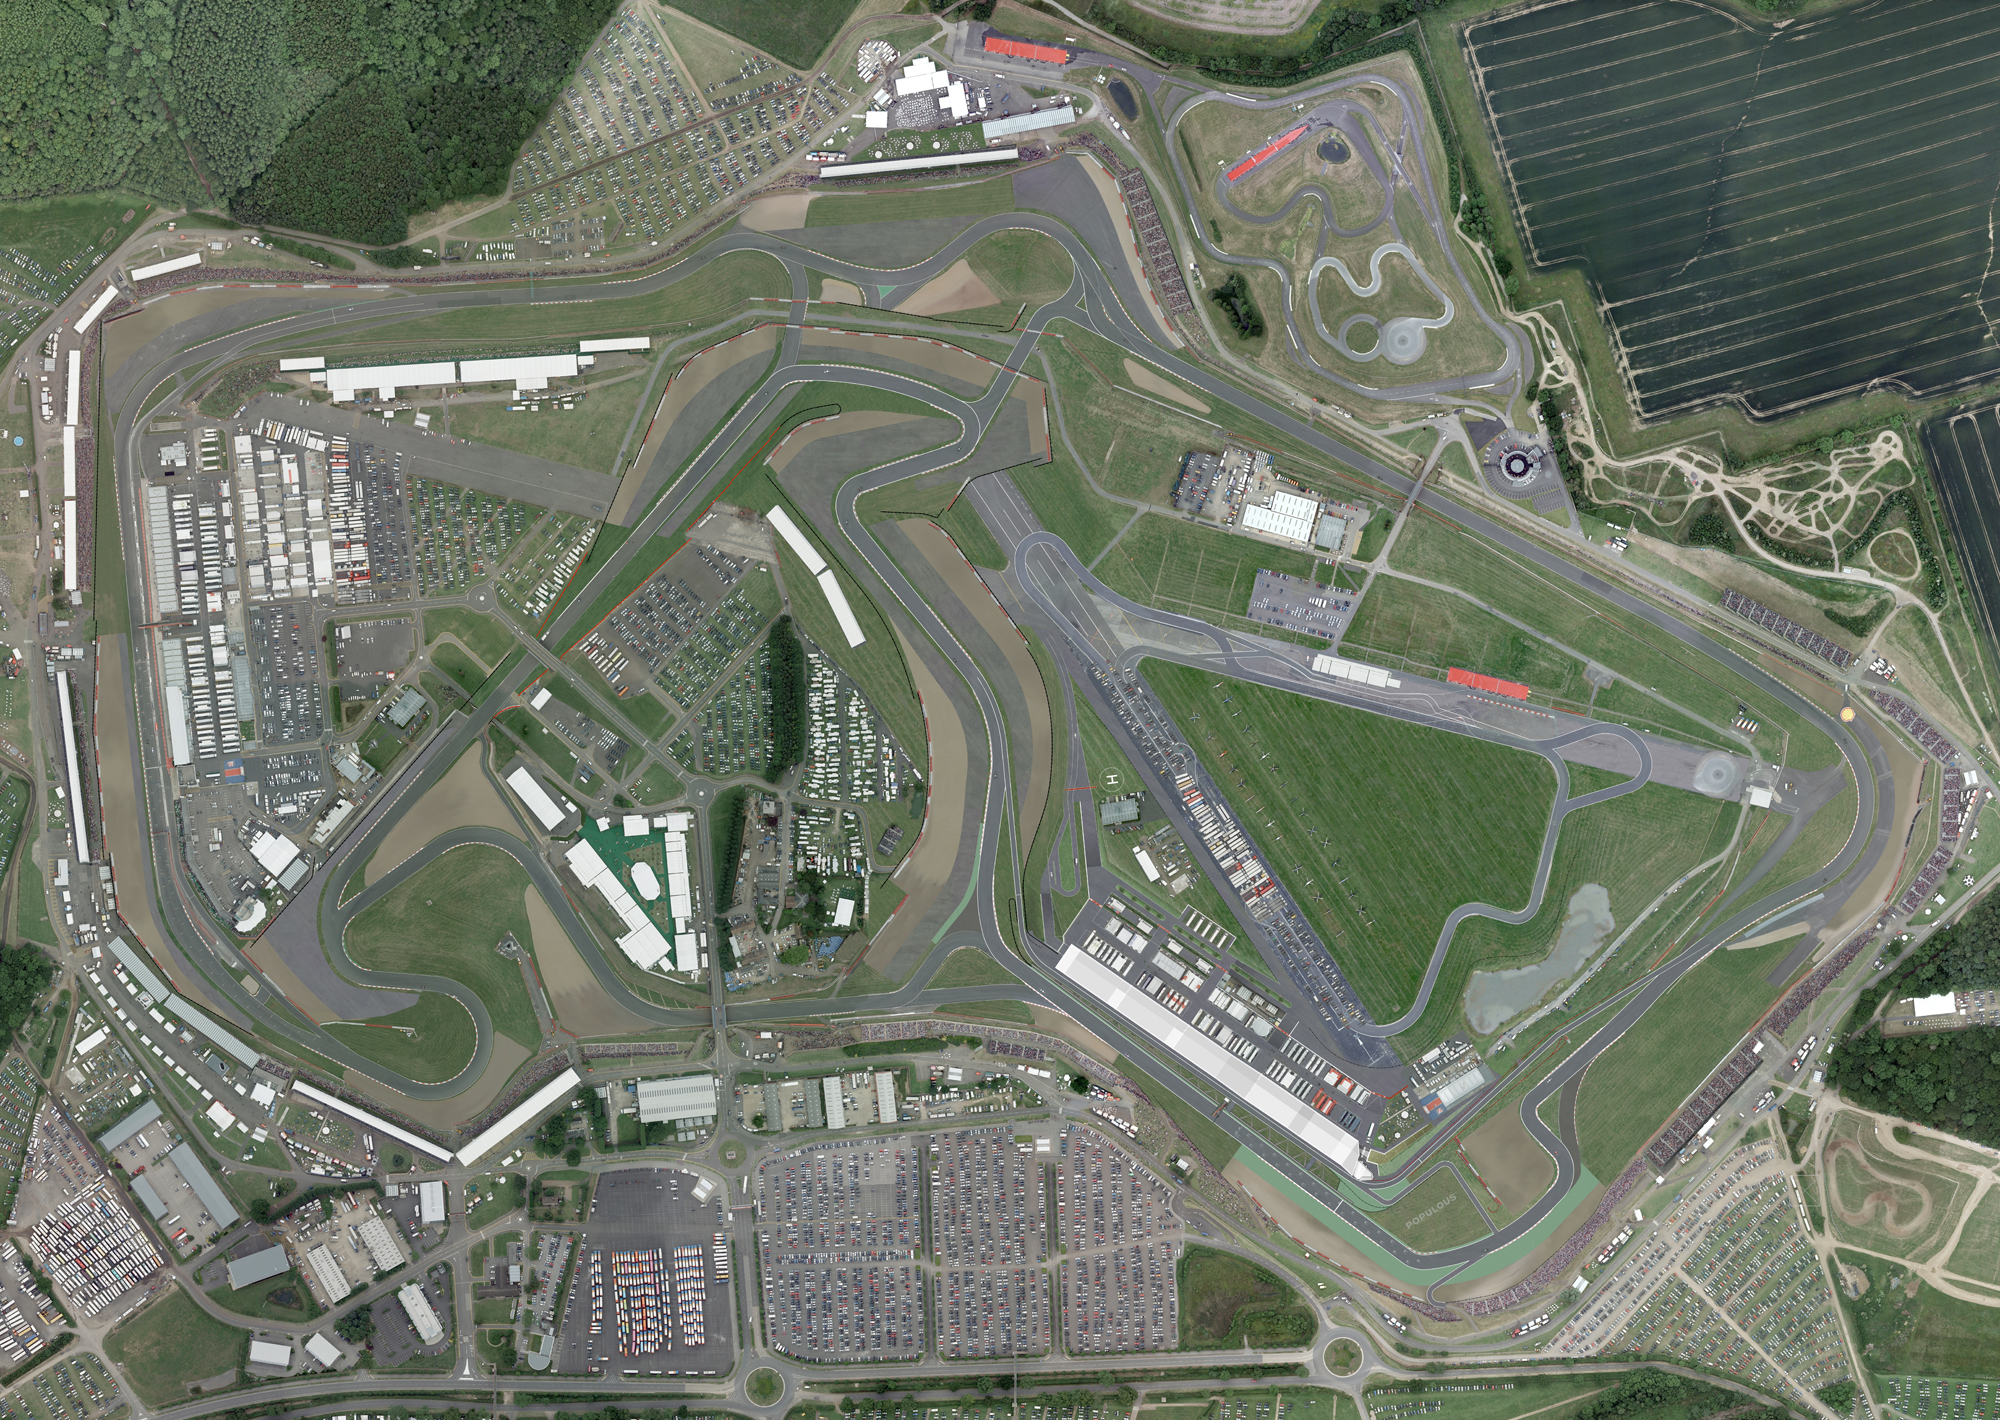 British GP to use new Silverstone layout | joeblogsf1